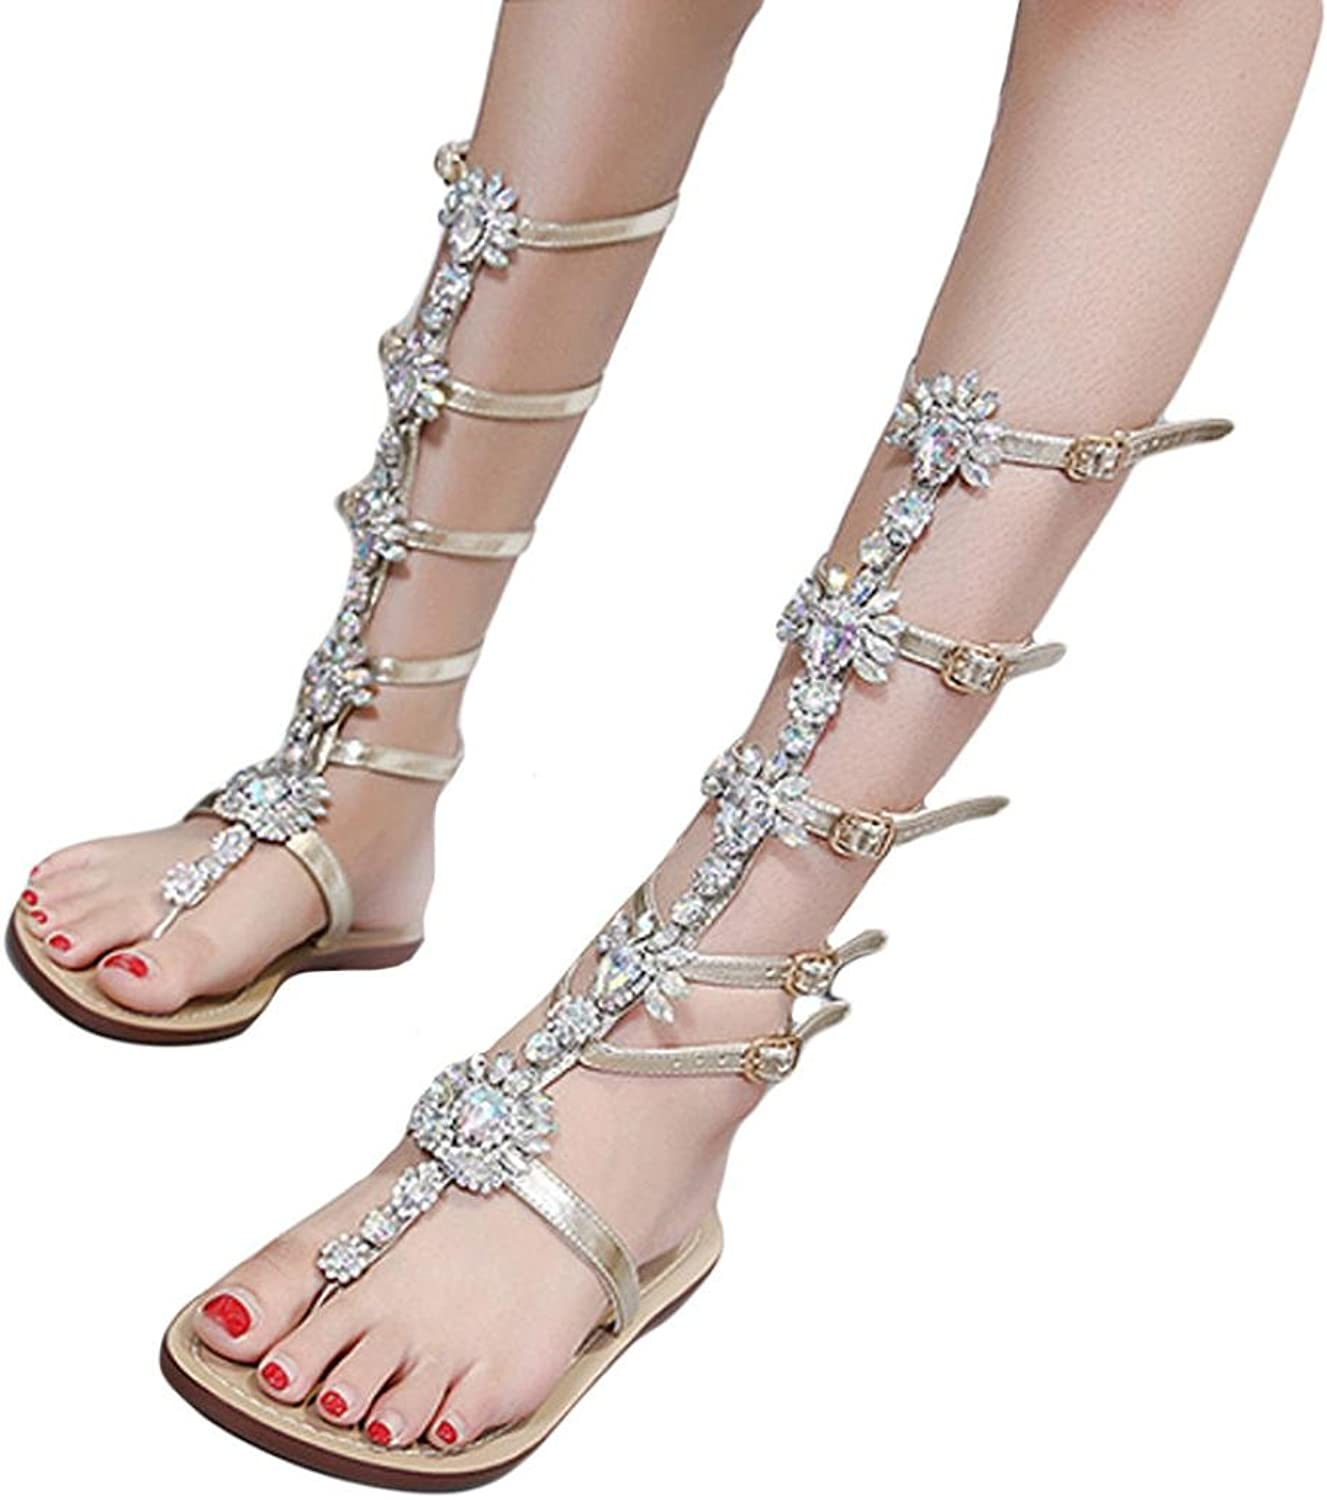 Fullfun Womens Summer Flat Shining Rhinestones Chain Sandals Boots T-Strap shoes